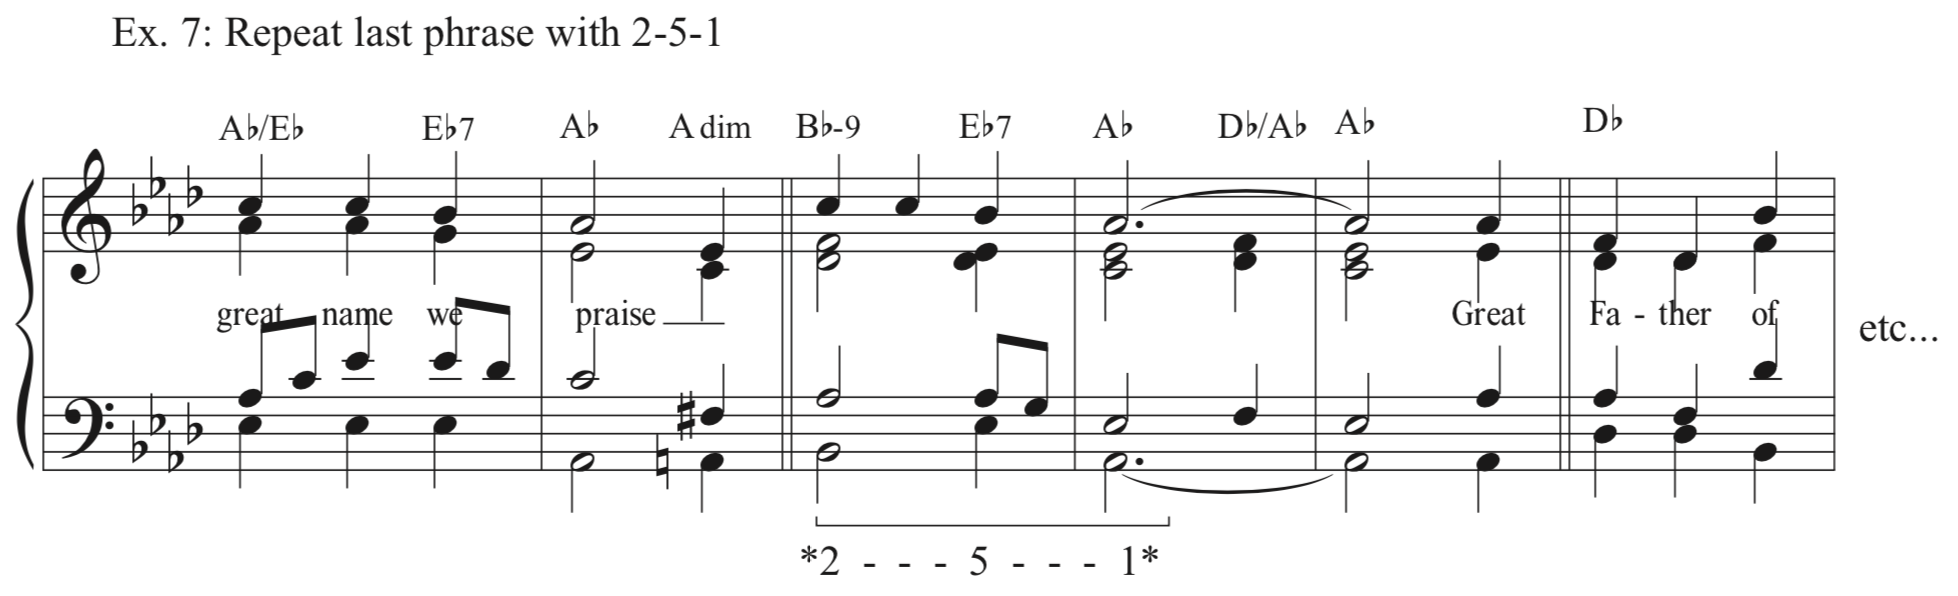 Ex. 7 - Repeat Last Phrase with 2-5-1 - You could repeat the last phrase verbatim, but in some hymns that may be confusing, and why not change things up a bit? Often a 2-5-1 progression will fit well under the final phrase of a hymn, as it does here.